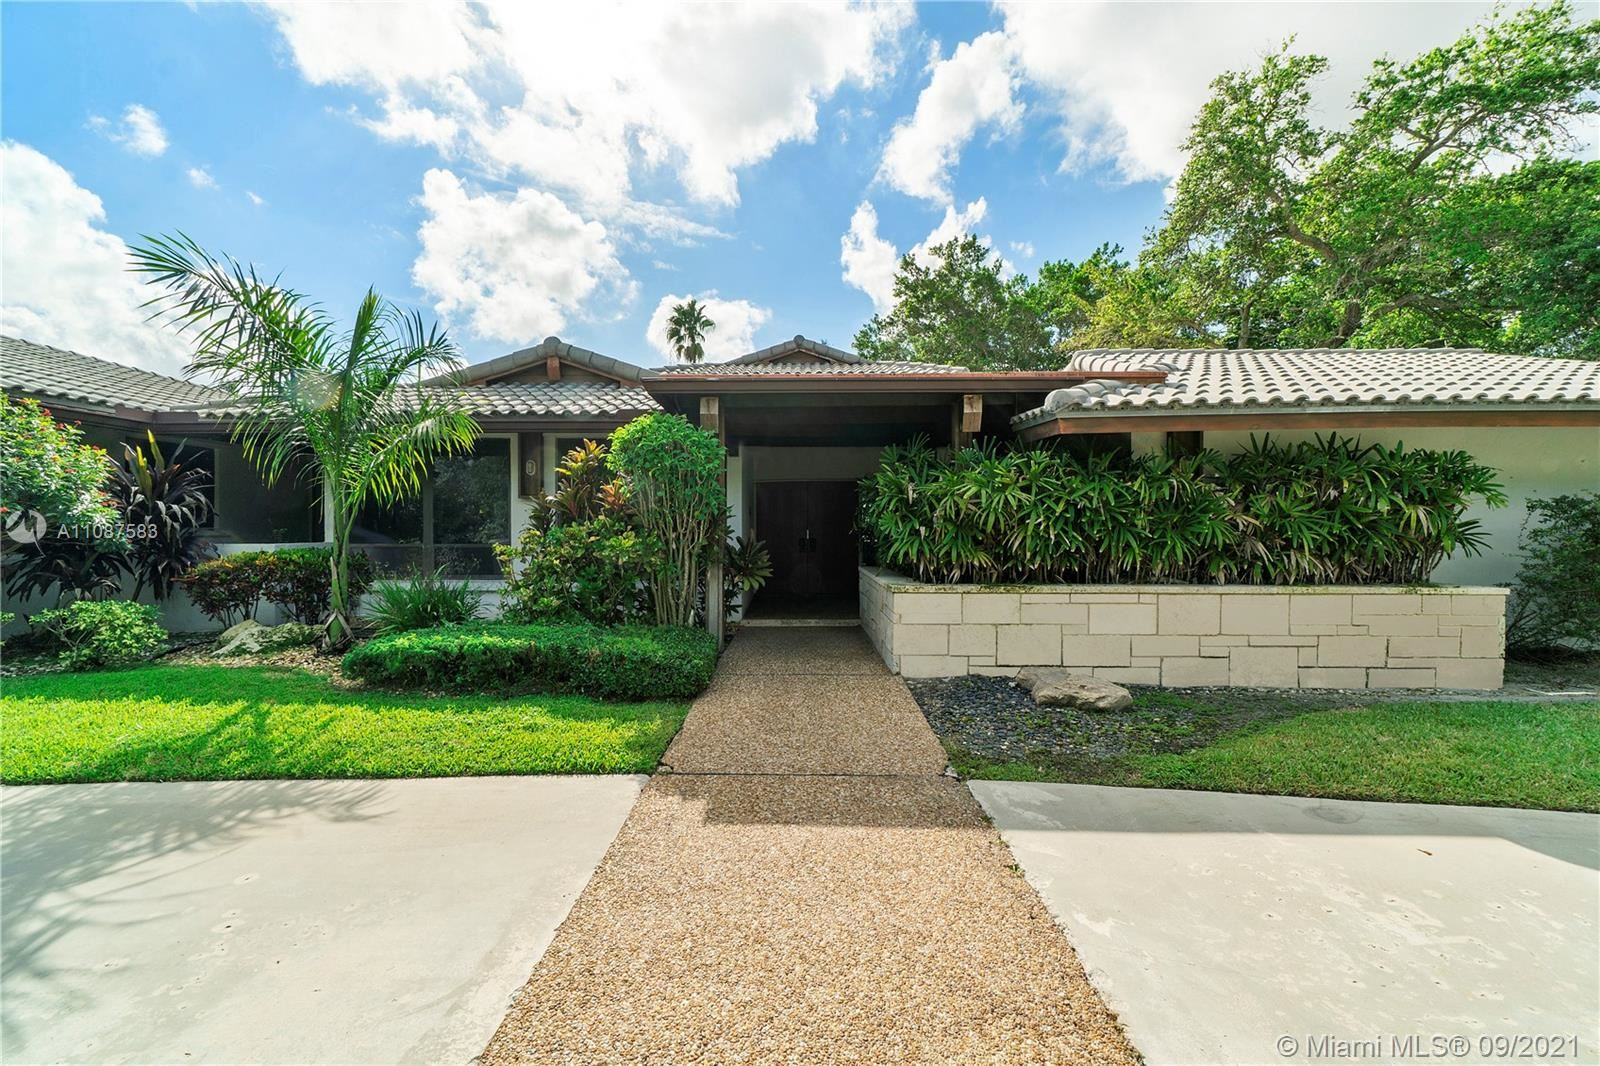 4035 NW 99th Ave, Coral Springs, FL 33065 - #: A11087583